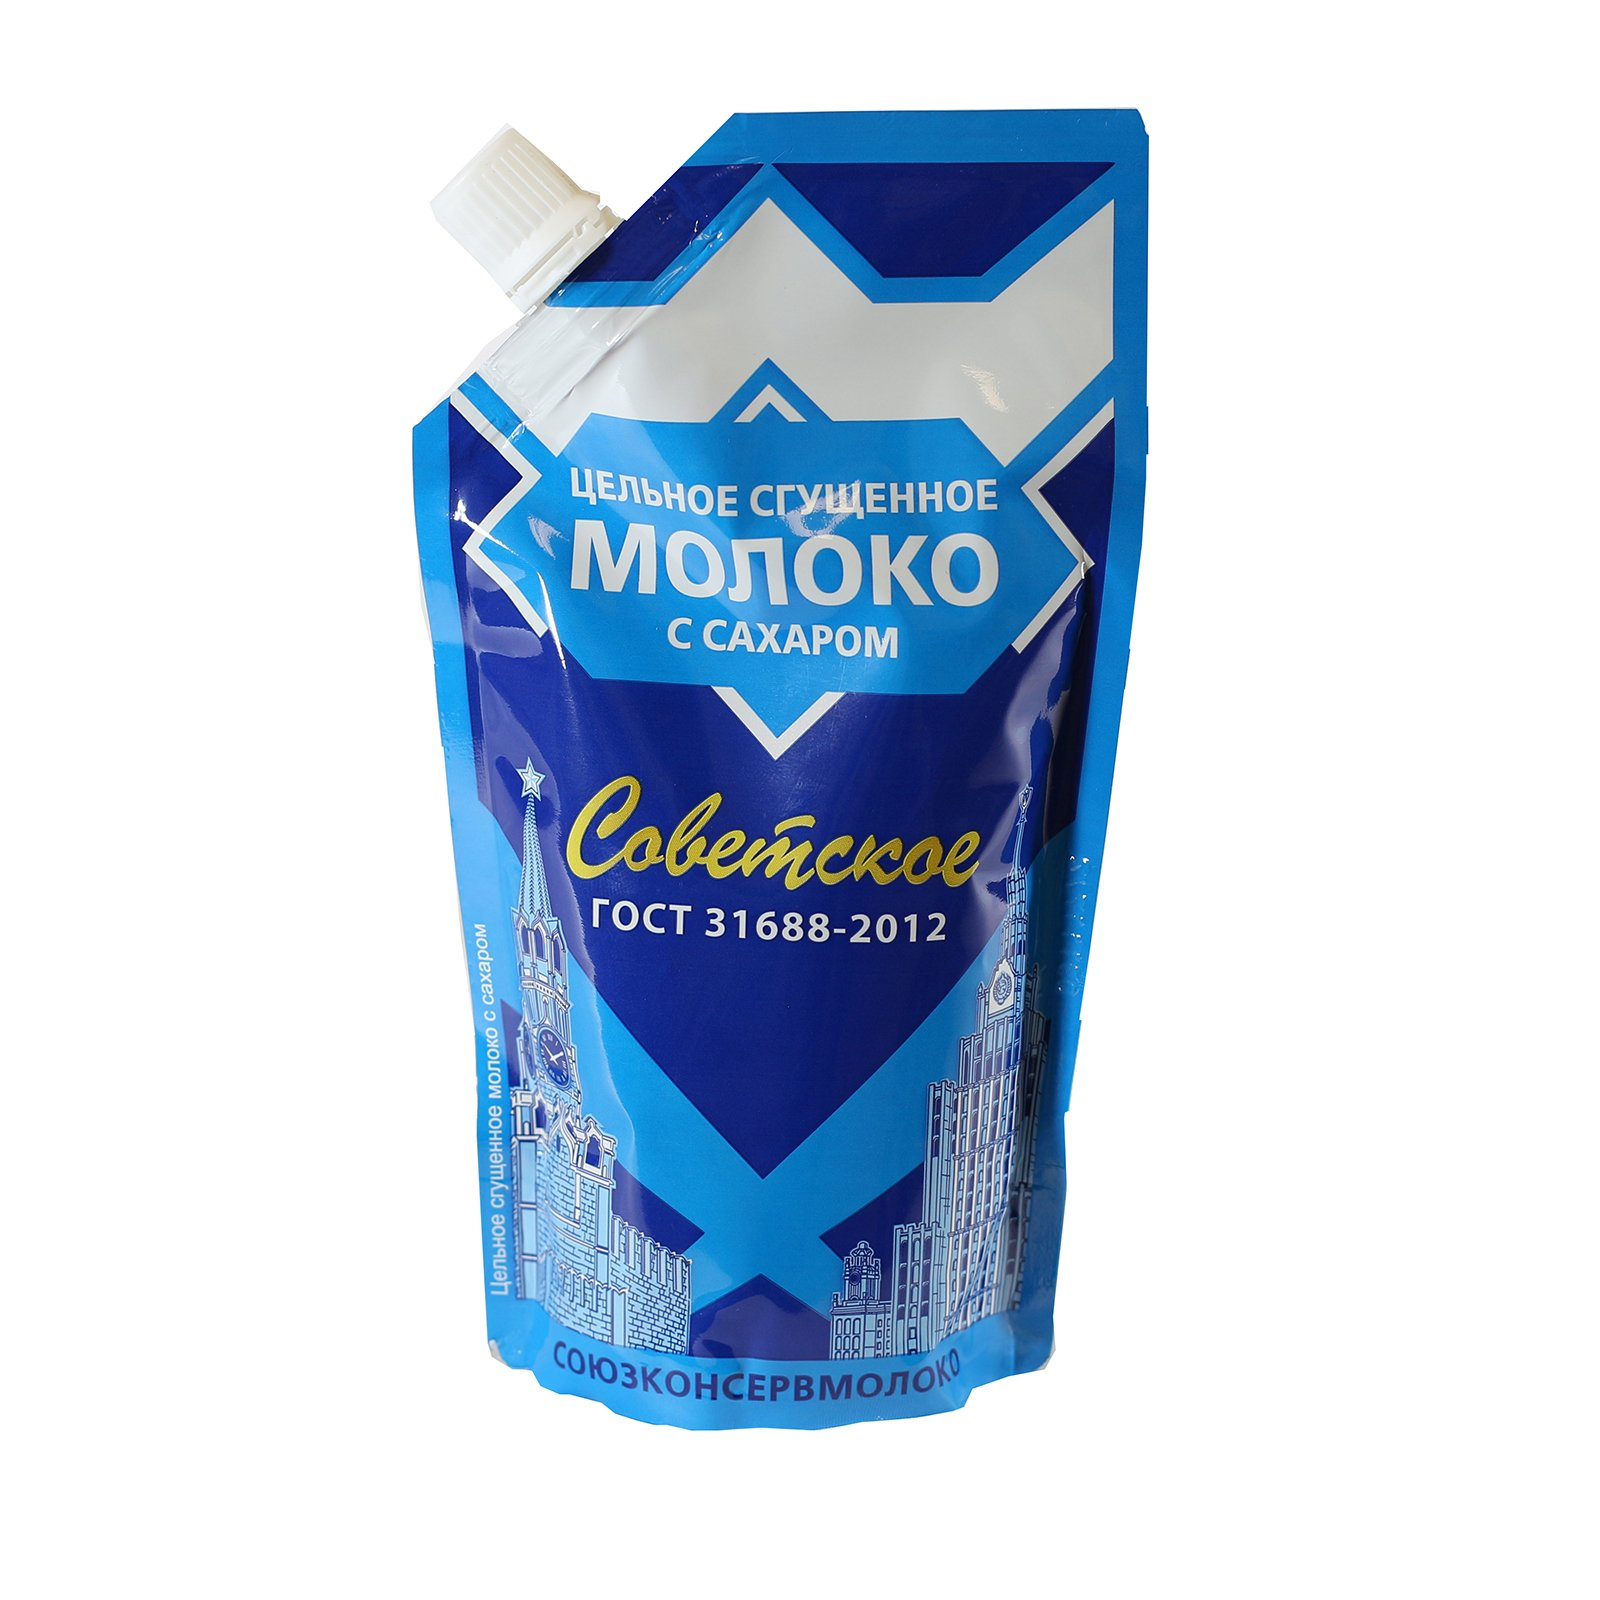 Imported Condensed Milk Sovetskoe 9.5oz/270g